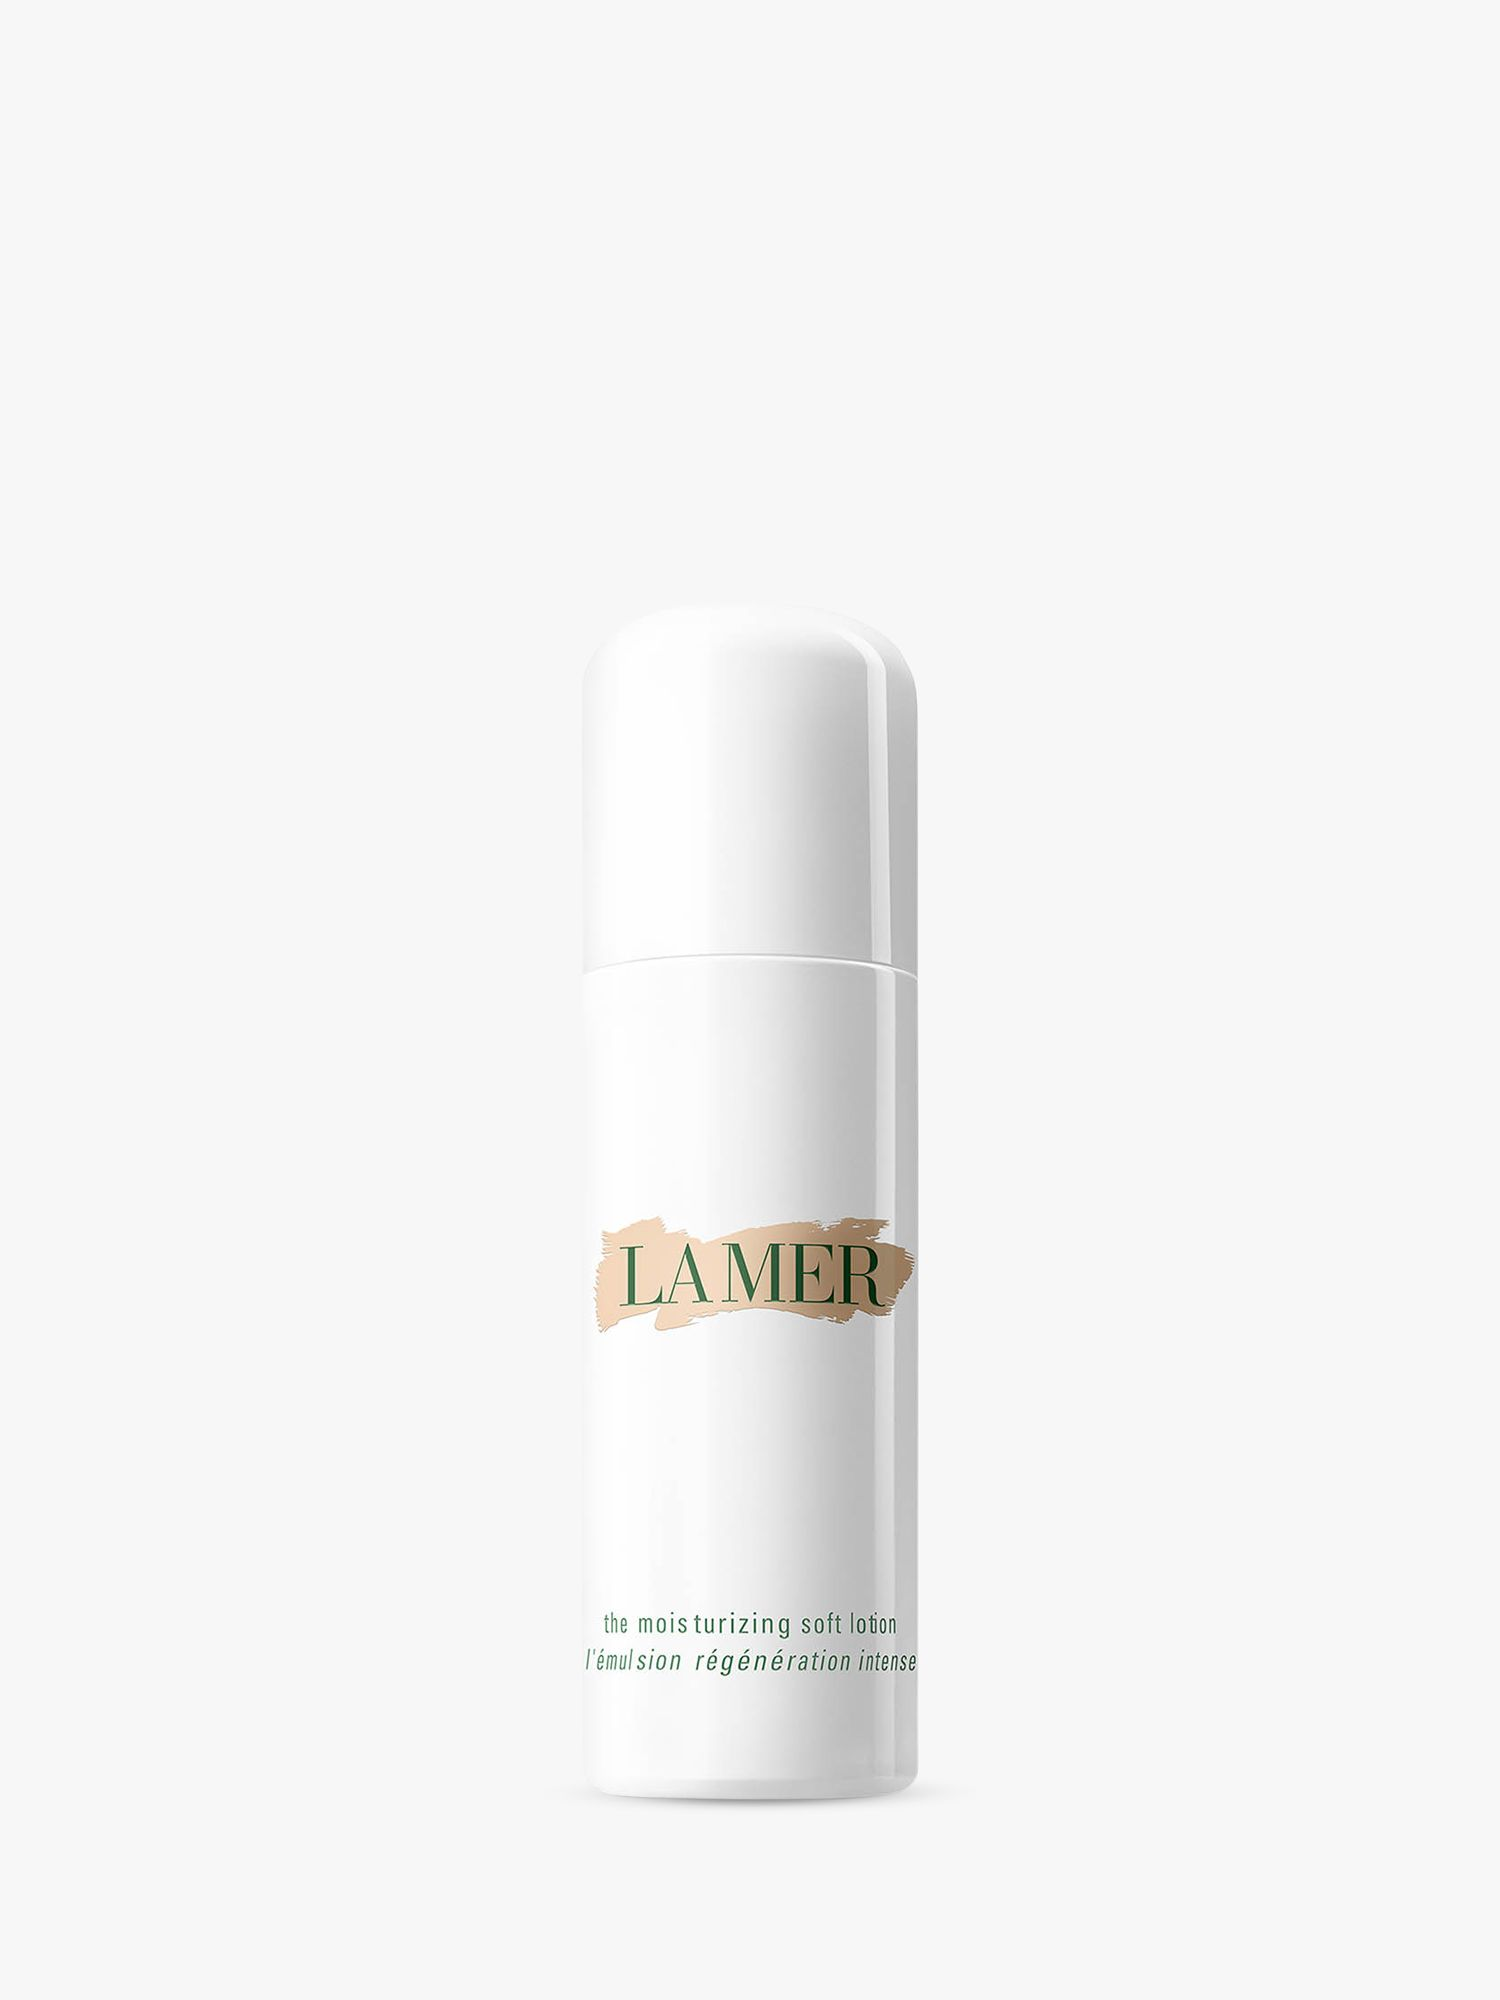 La Mer La Mer The Moisturising Soft Lotion, 50ml